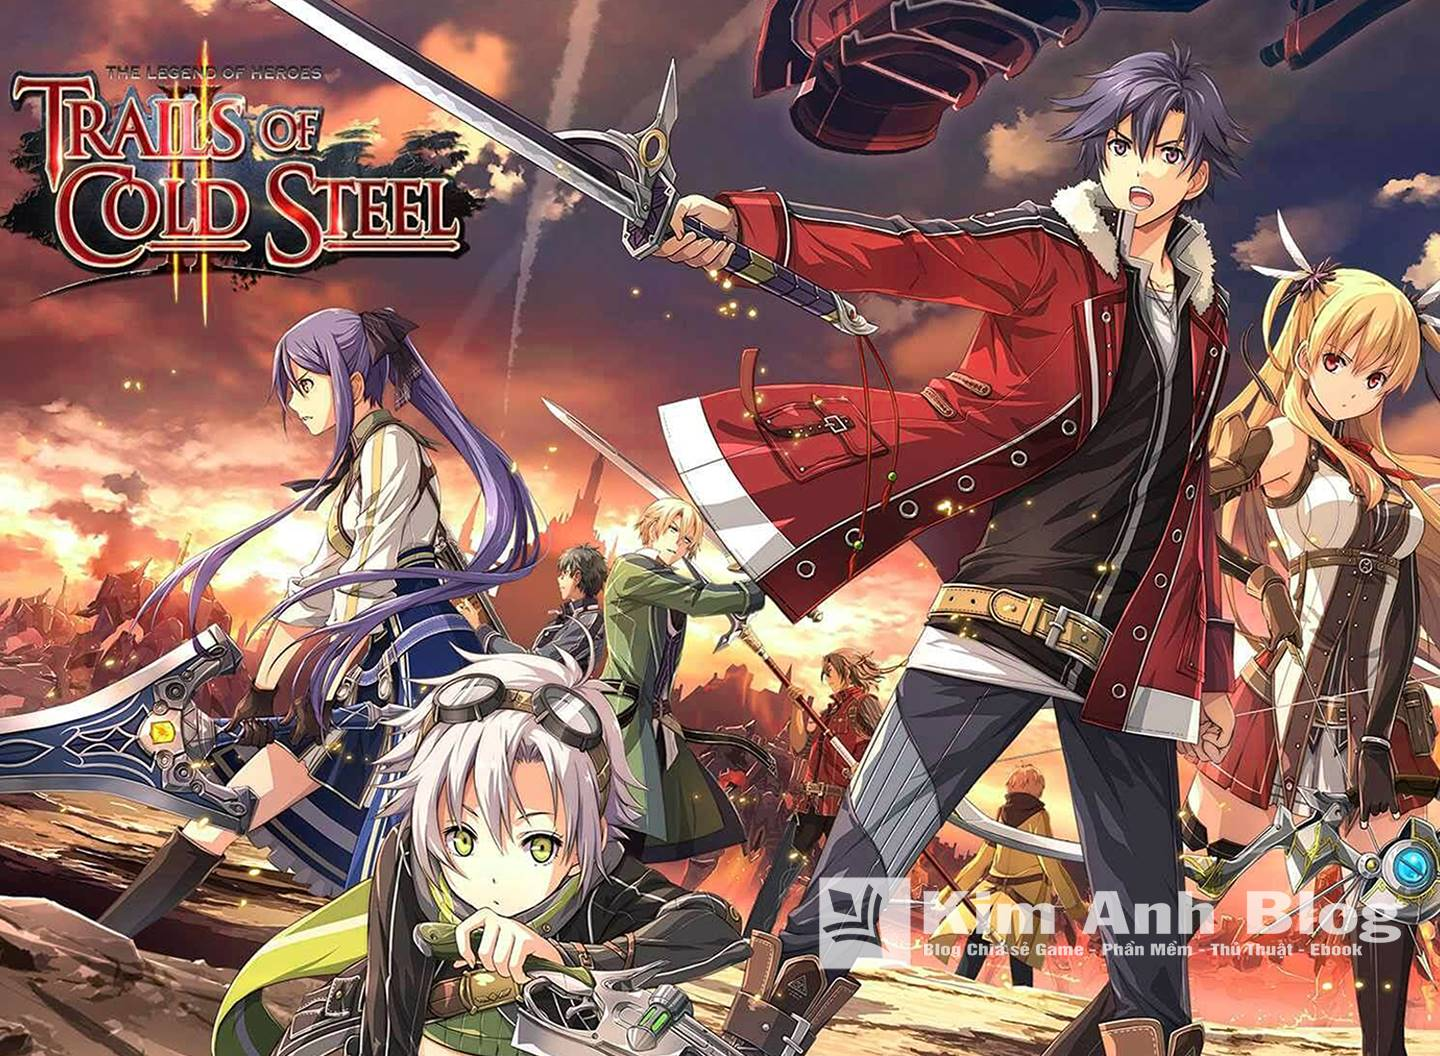 the legend of heroes: trails of cold steel ii pc, the legend of heroes: trails of cold steel, the legend of heroes trails of cold steel pc, the legend of heroes trails of cold steel ii trainer, trails of cold steel 2 walkthrough, the legend of heroes trails of cold steel anime, the legend of heroes trial of cold steel, the legend of heroes trails of cold steel 2 final boss, the legend of heroes trails of cold steel 2 full, the legend of heroes trails of cold steel 2 full crack, the legend of heroes trails of cold steel ii cheat engine, trails of cold steel ii pc, trails of cold steel ii for pc, trails of cold steel ii characters